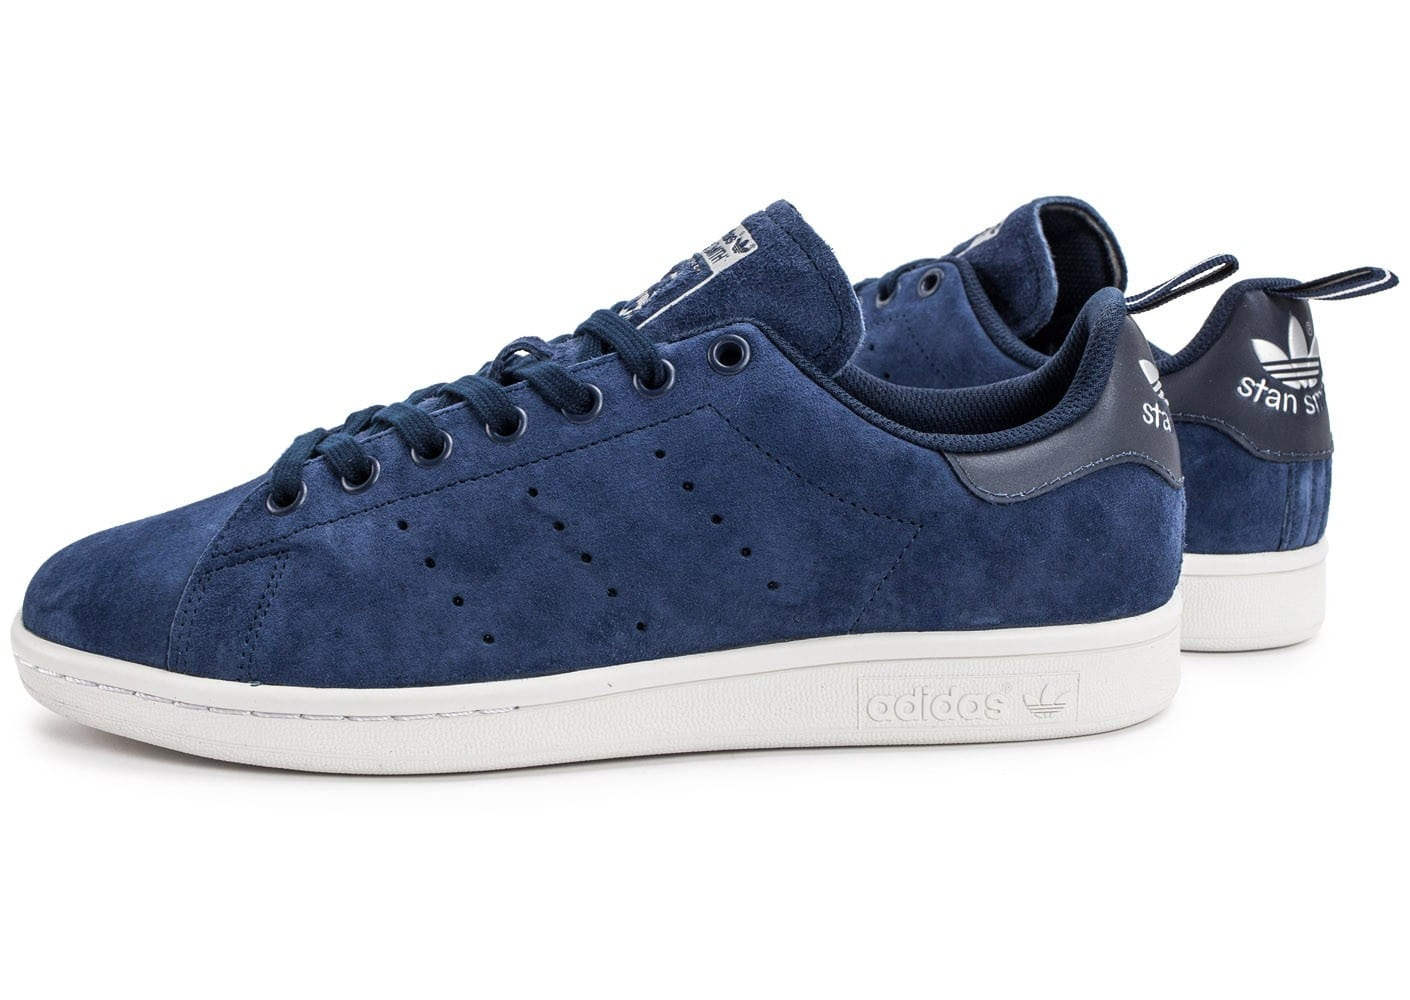 Adidas Stan Smith Bleu Marine Homme